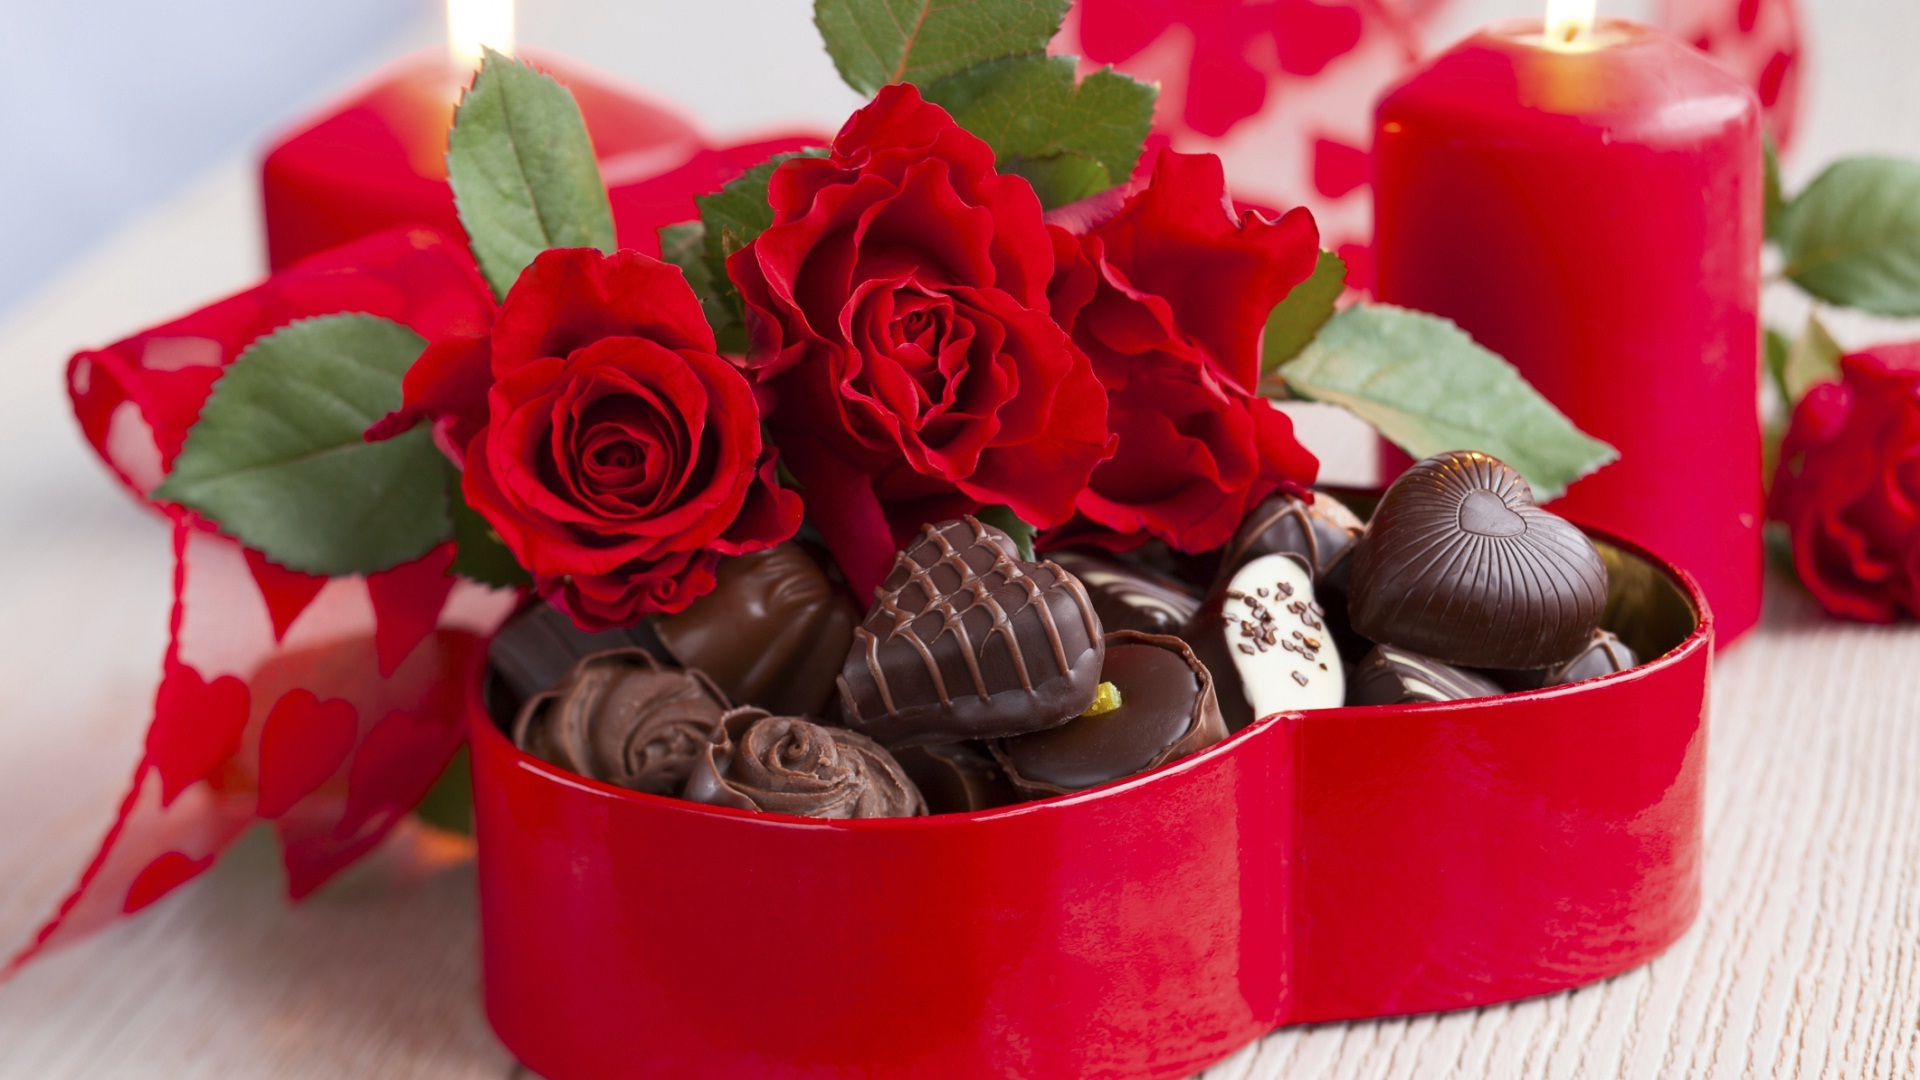 Image result for Ý nghĩa của ngày Valentine